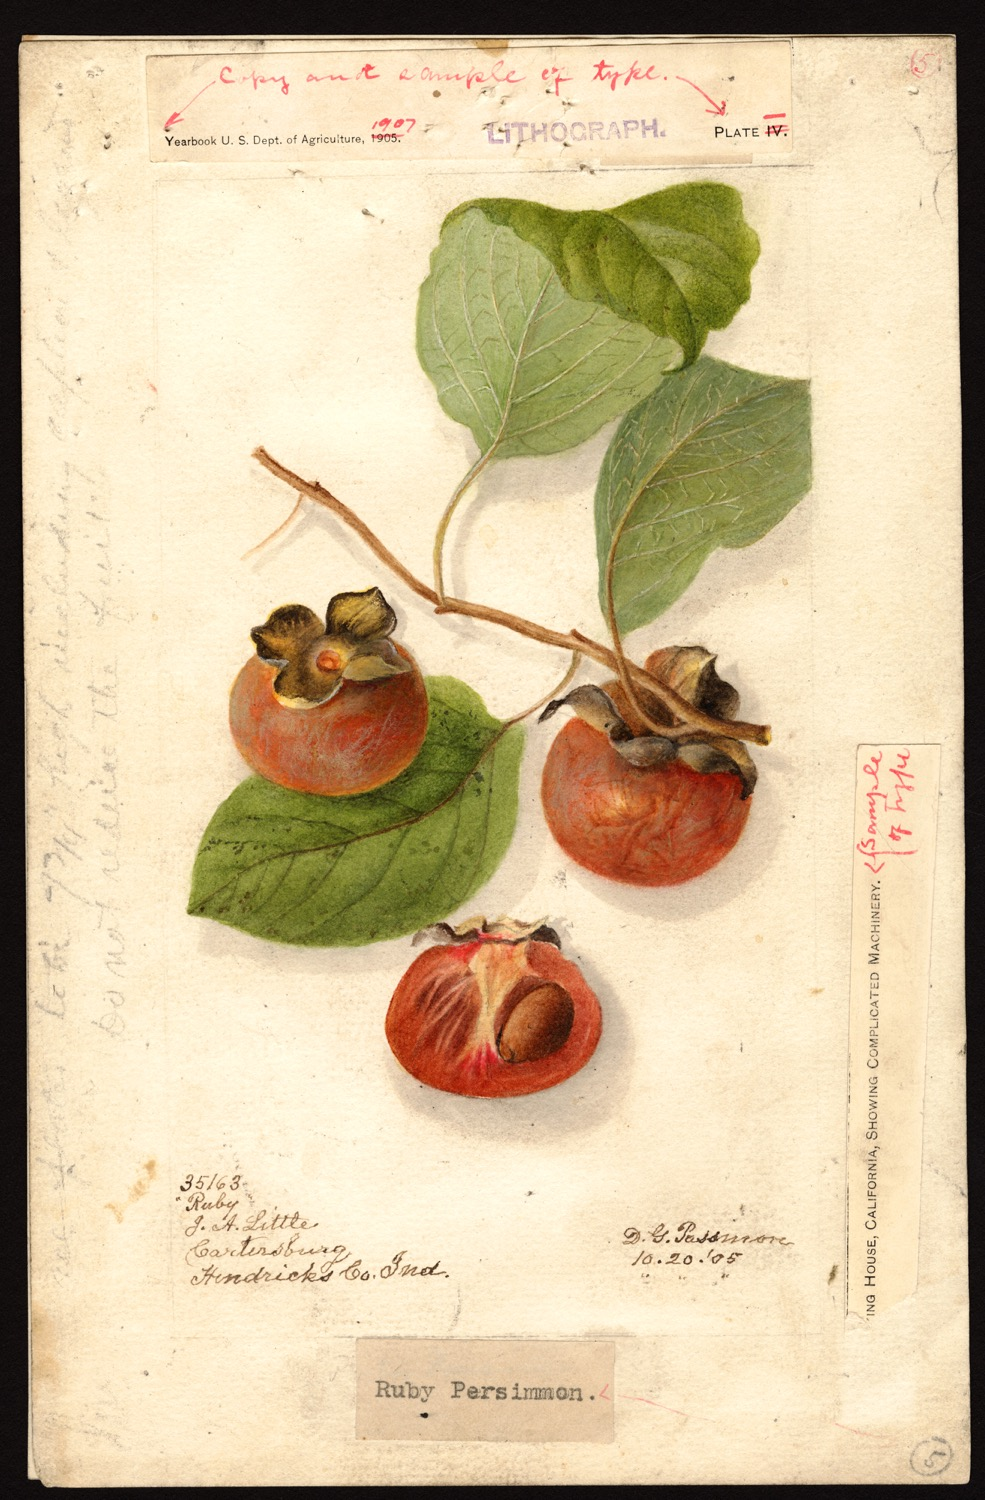 Deborah Griscom Passmore, caco, 1905, (fonte: U.S. Department of Agriculture Pomological Watercolor Collection. Rare and Special Collections, National Agricultural Library, Beltsville, MD 20705)